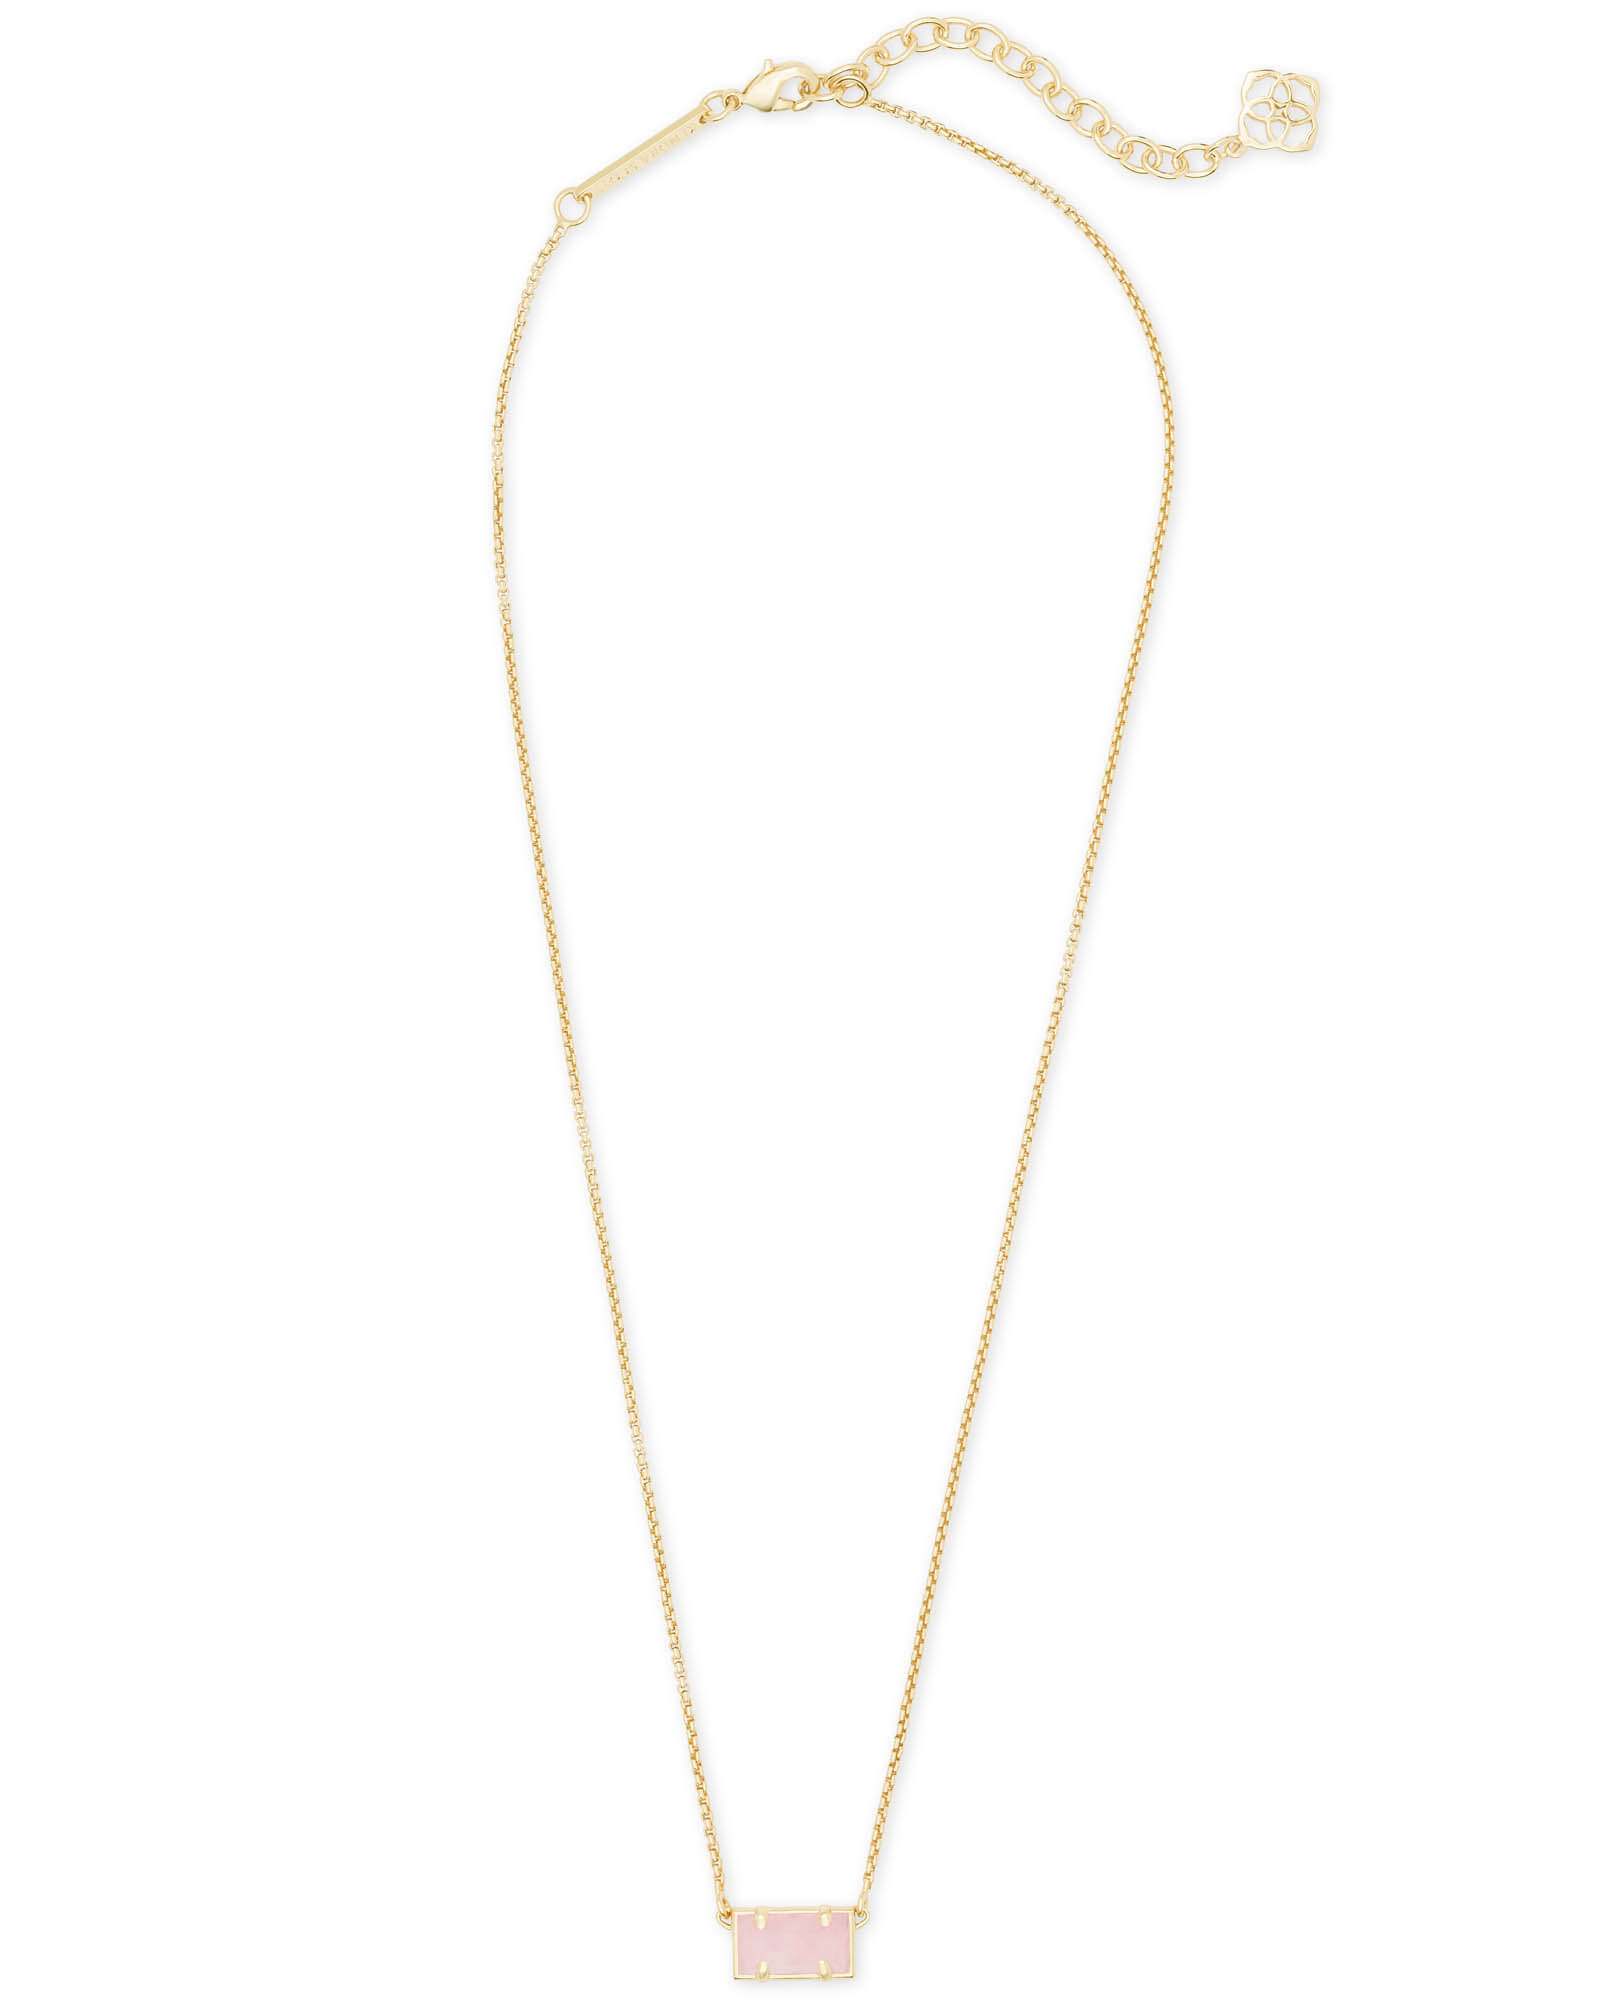 Pattie Gold Pendant Necklace In Rose Quartz